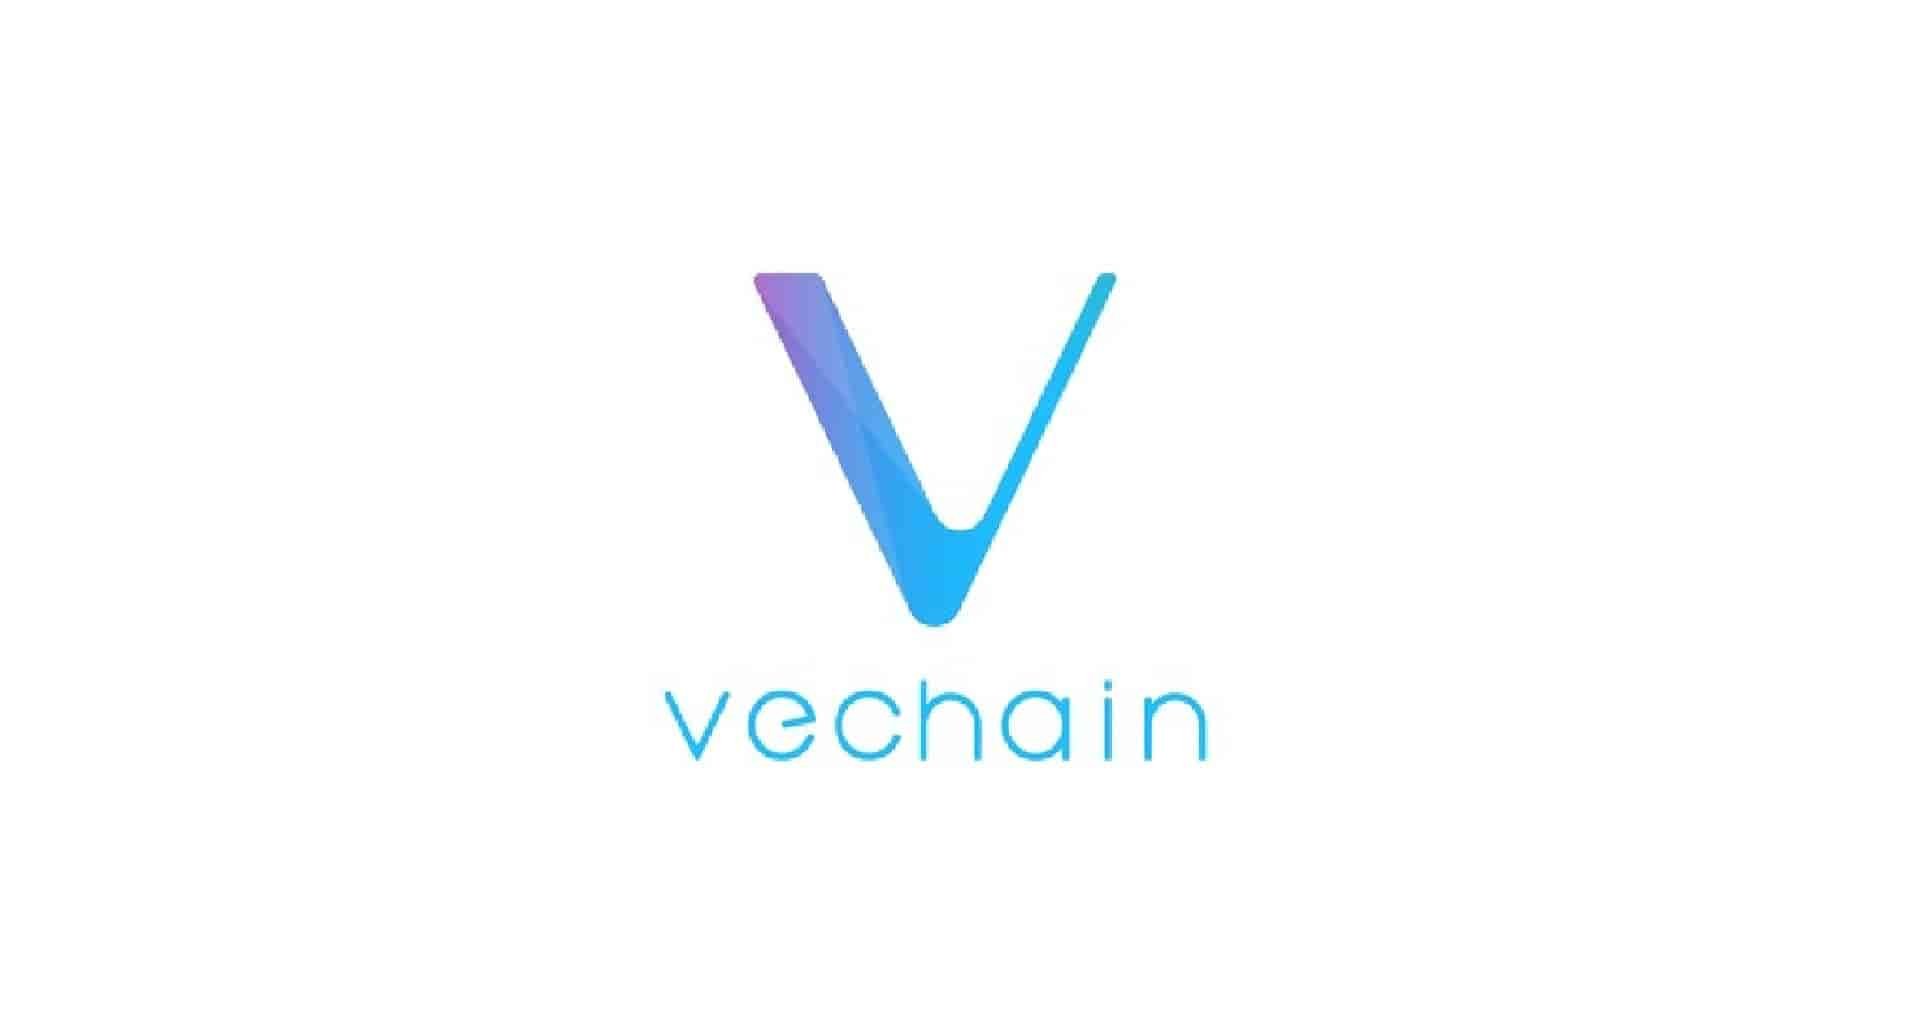 """VeChain Introduces New Blockchain-enabled Sustainability Solution To Power """"Green Business"""" For Enterprises"""